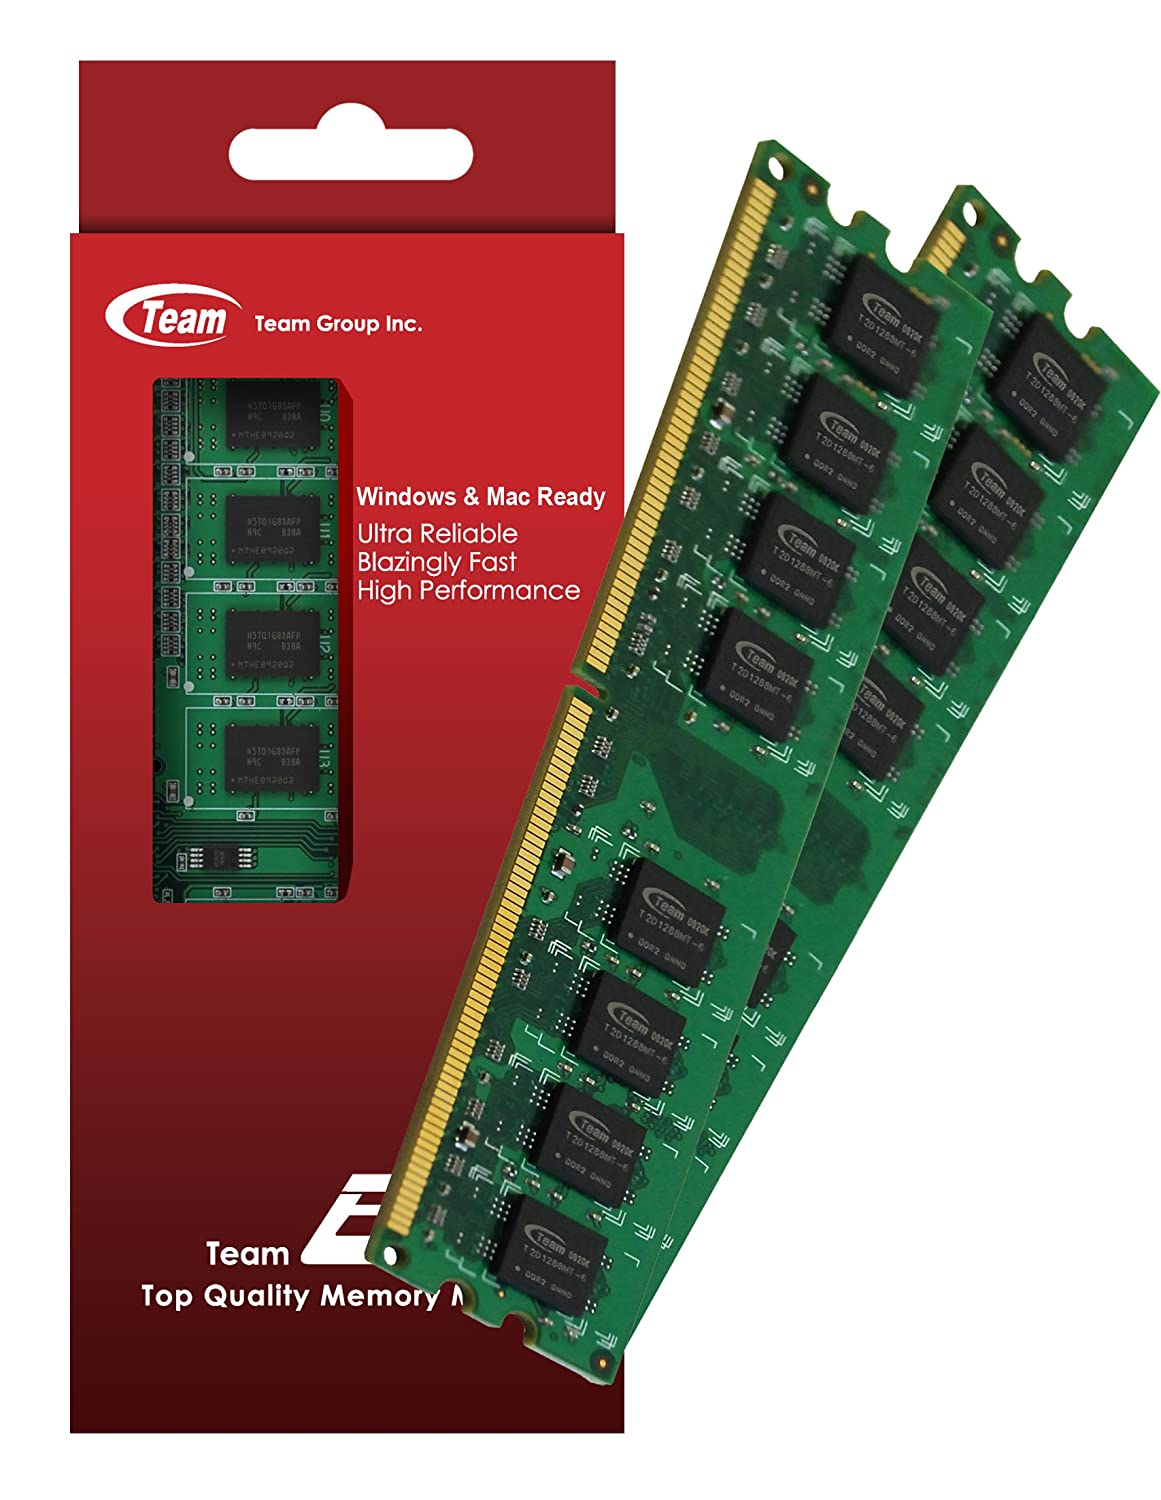 4GB (2GBx2) Team High Performance Memory RAM Upgrade For Dell XPS 720 H2C 9150 One 20. The Memory Kit comes with Life Time Warranty. 450260 b21 445167 051 2gb ddr2 800 ecc server memory one year warranty